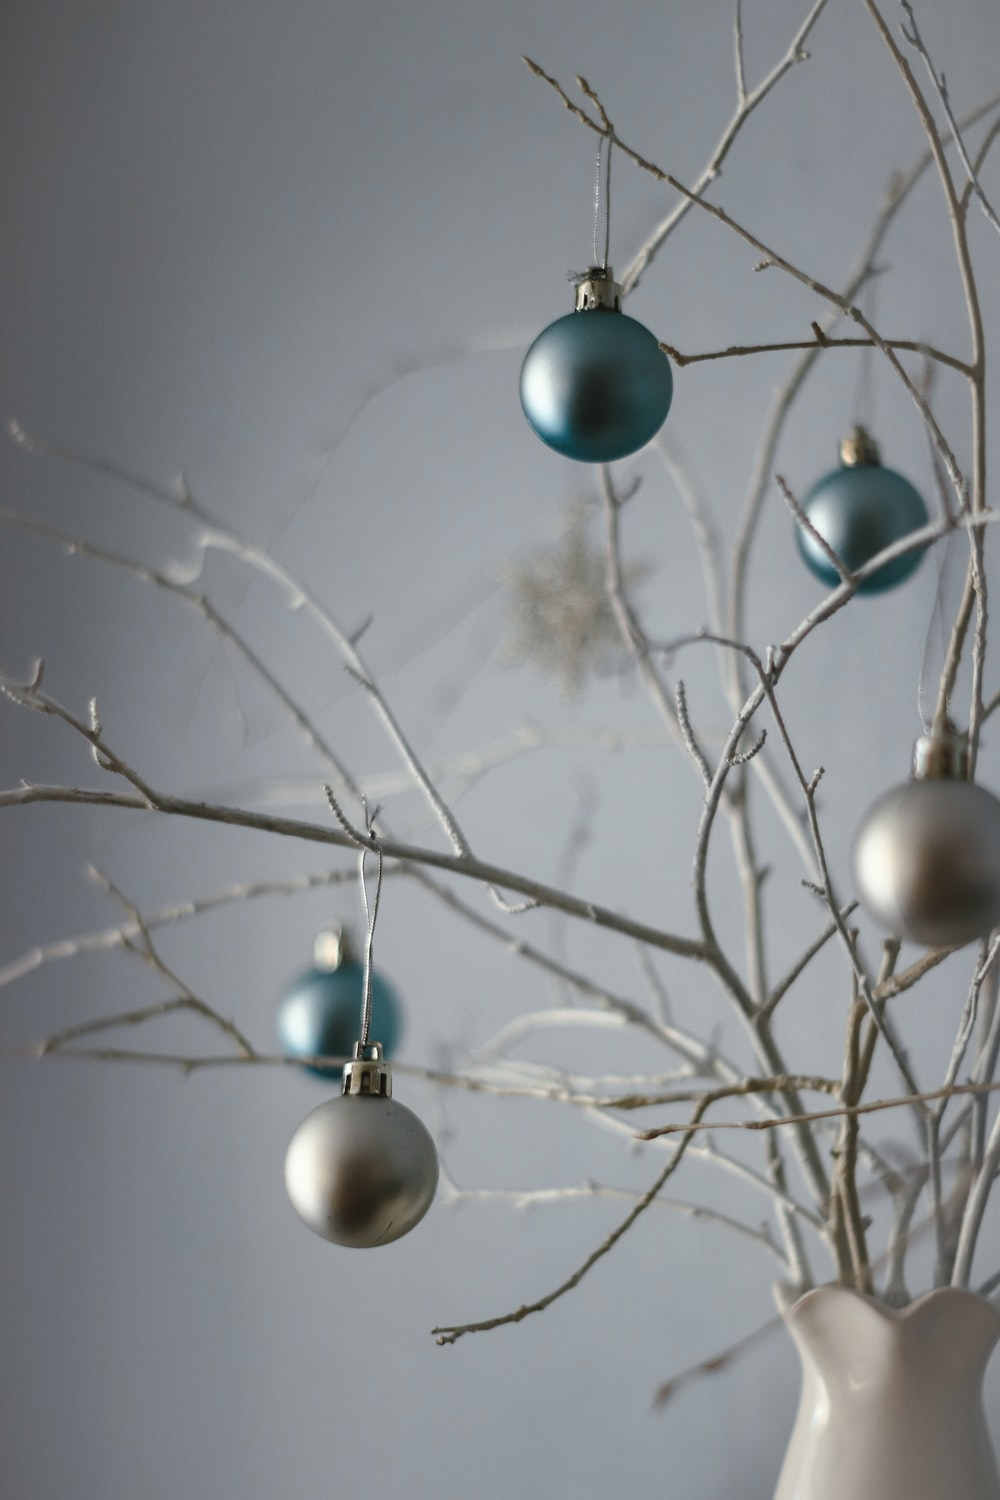 blue and white baubles on tree branch